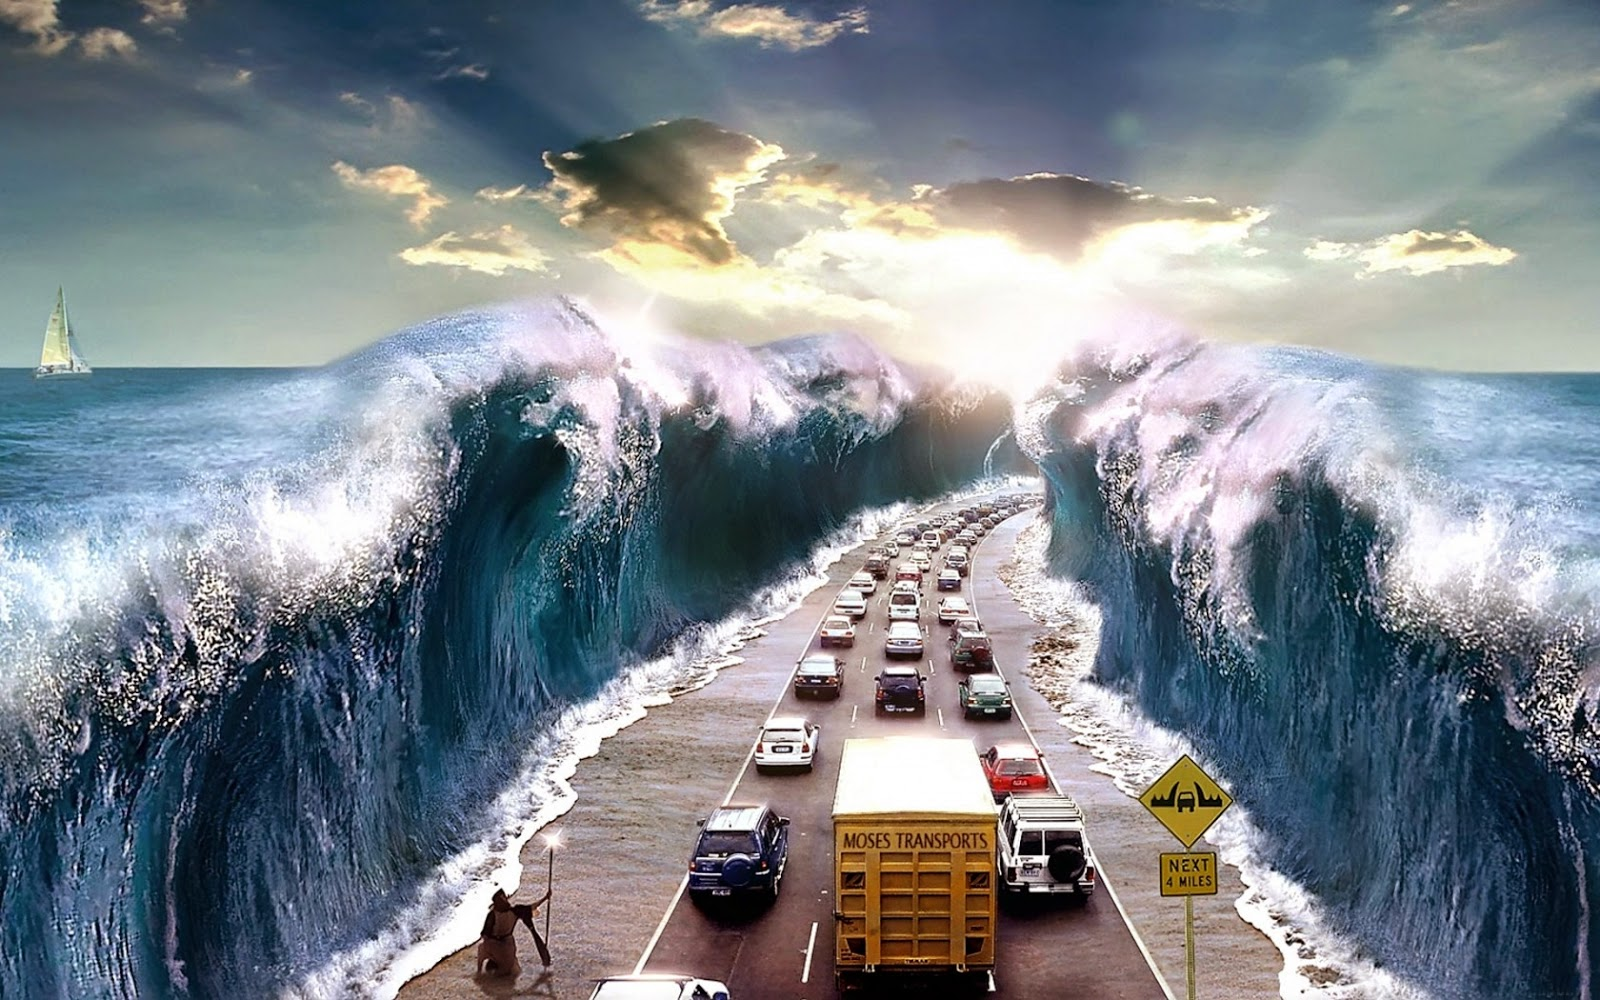 tsunami Fantastic Photoshop Manipulation Ideas